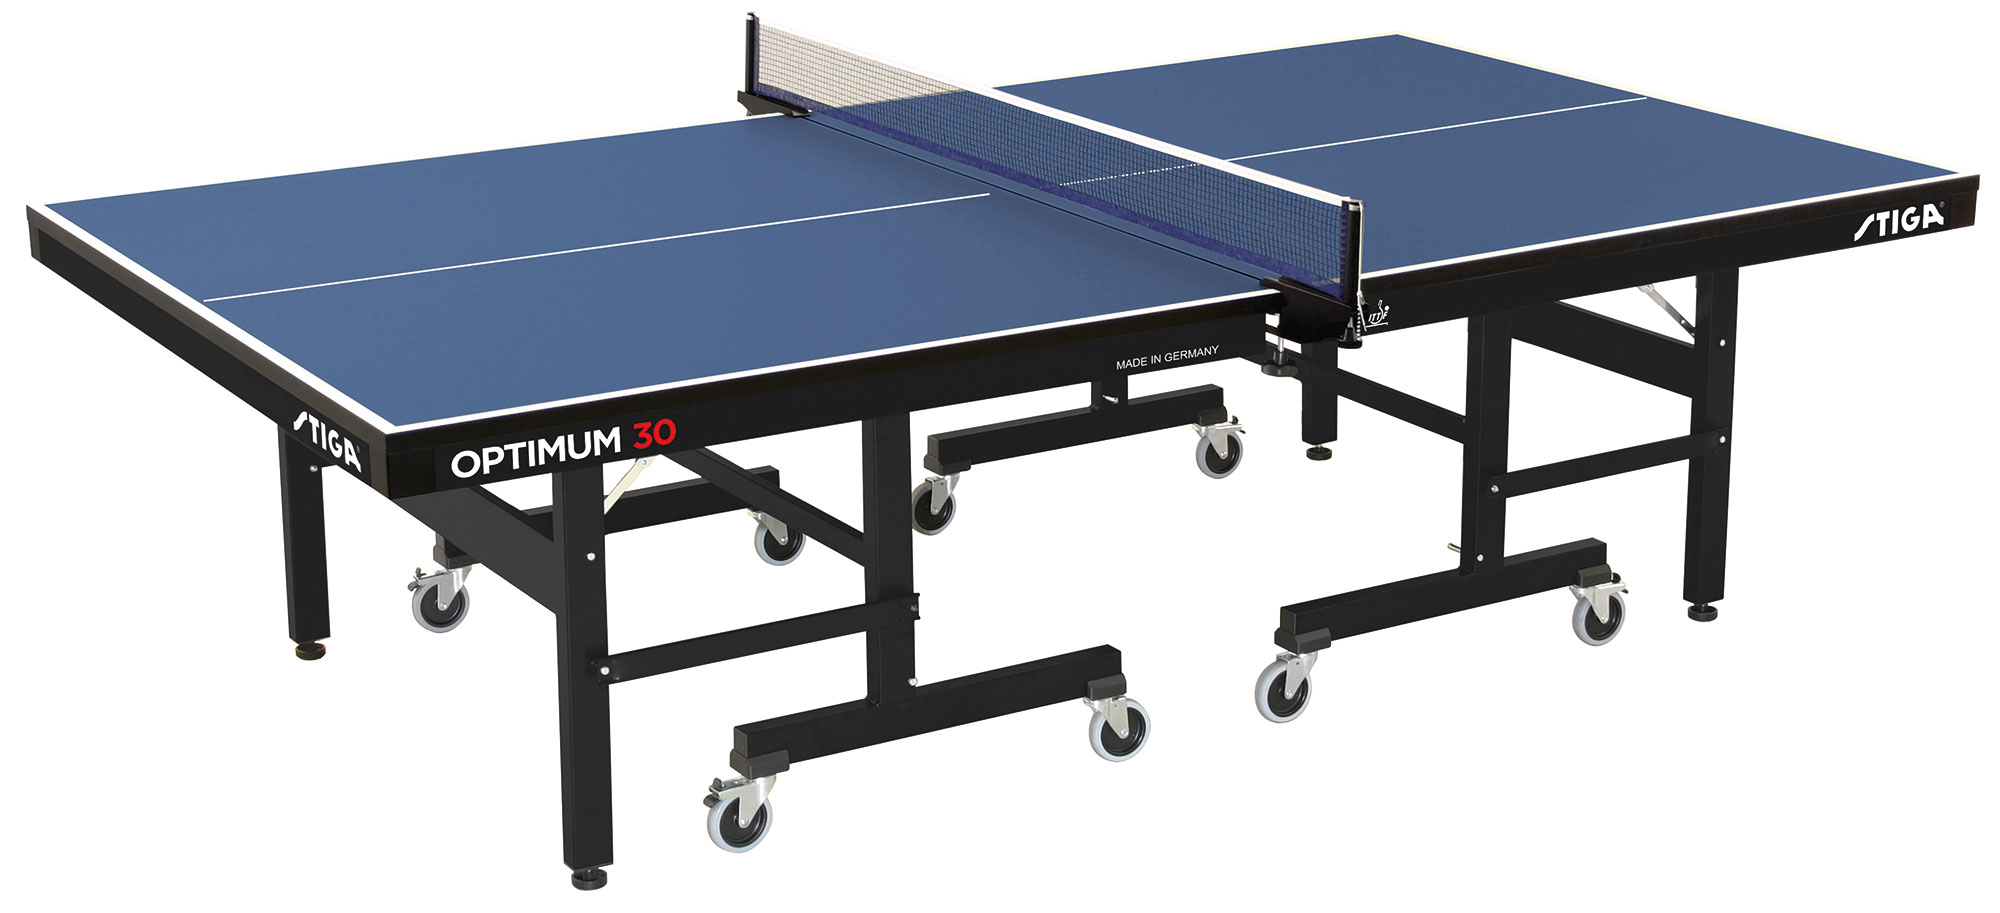 Thorntons table tennistable tennis table stiga optimum for To the table